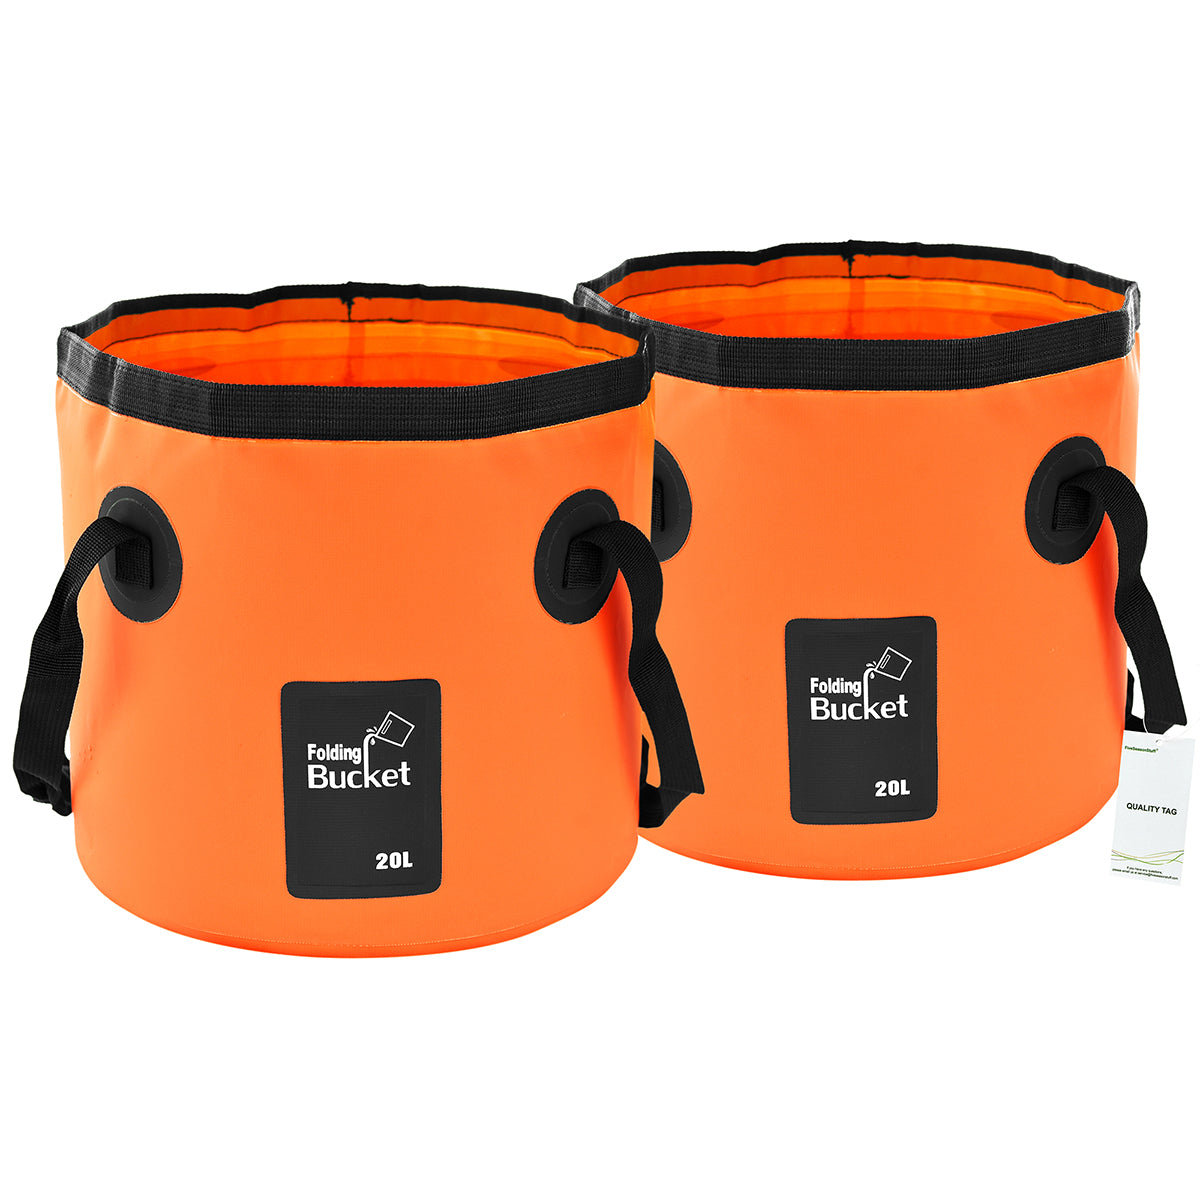 Two standing orange collapsible buckets with handles display with a white background